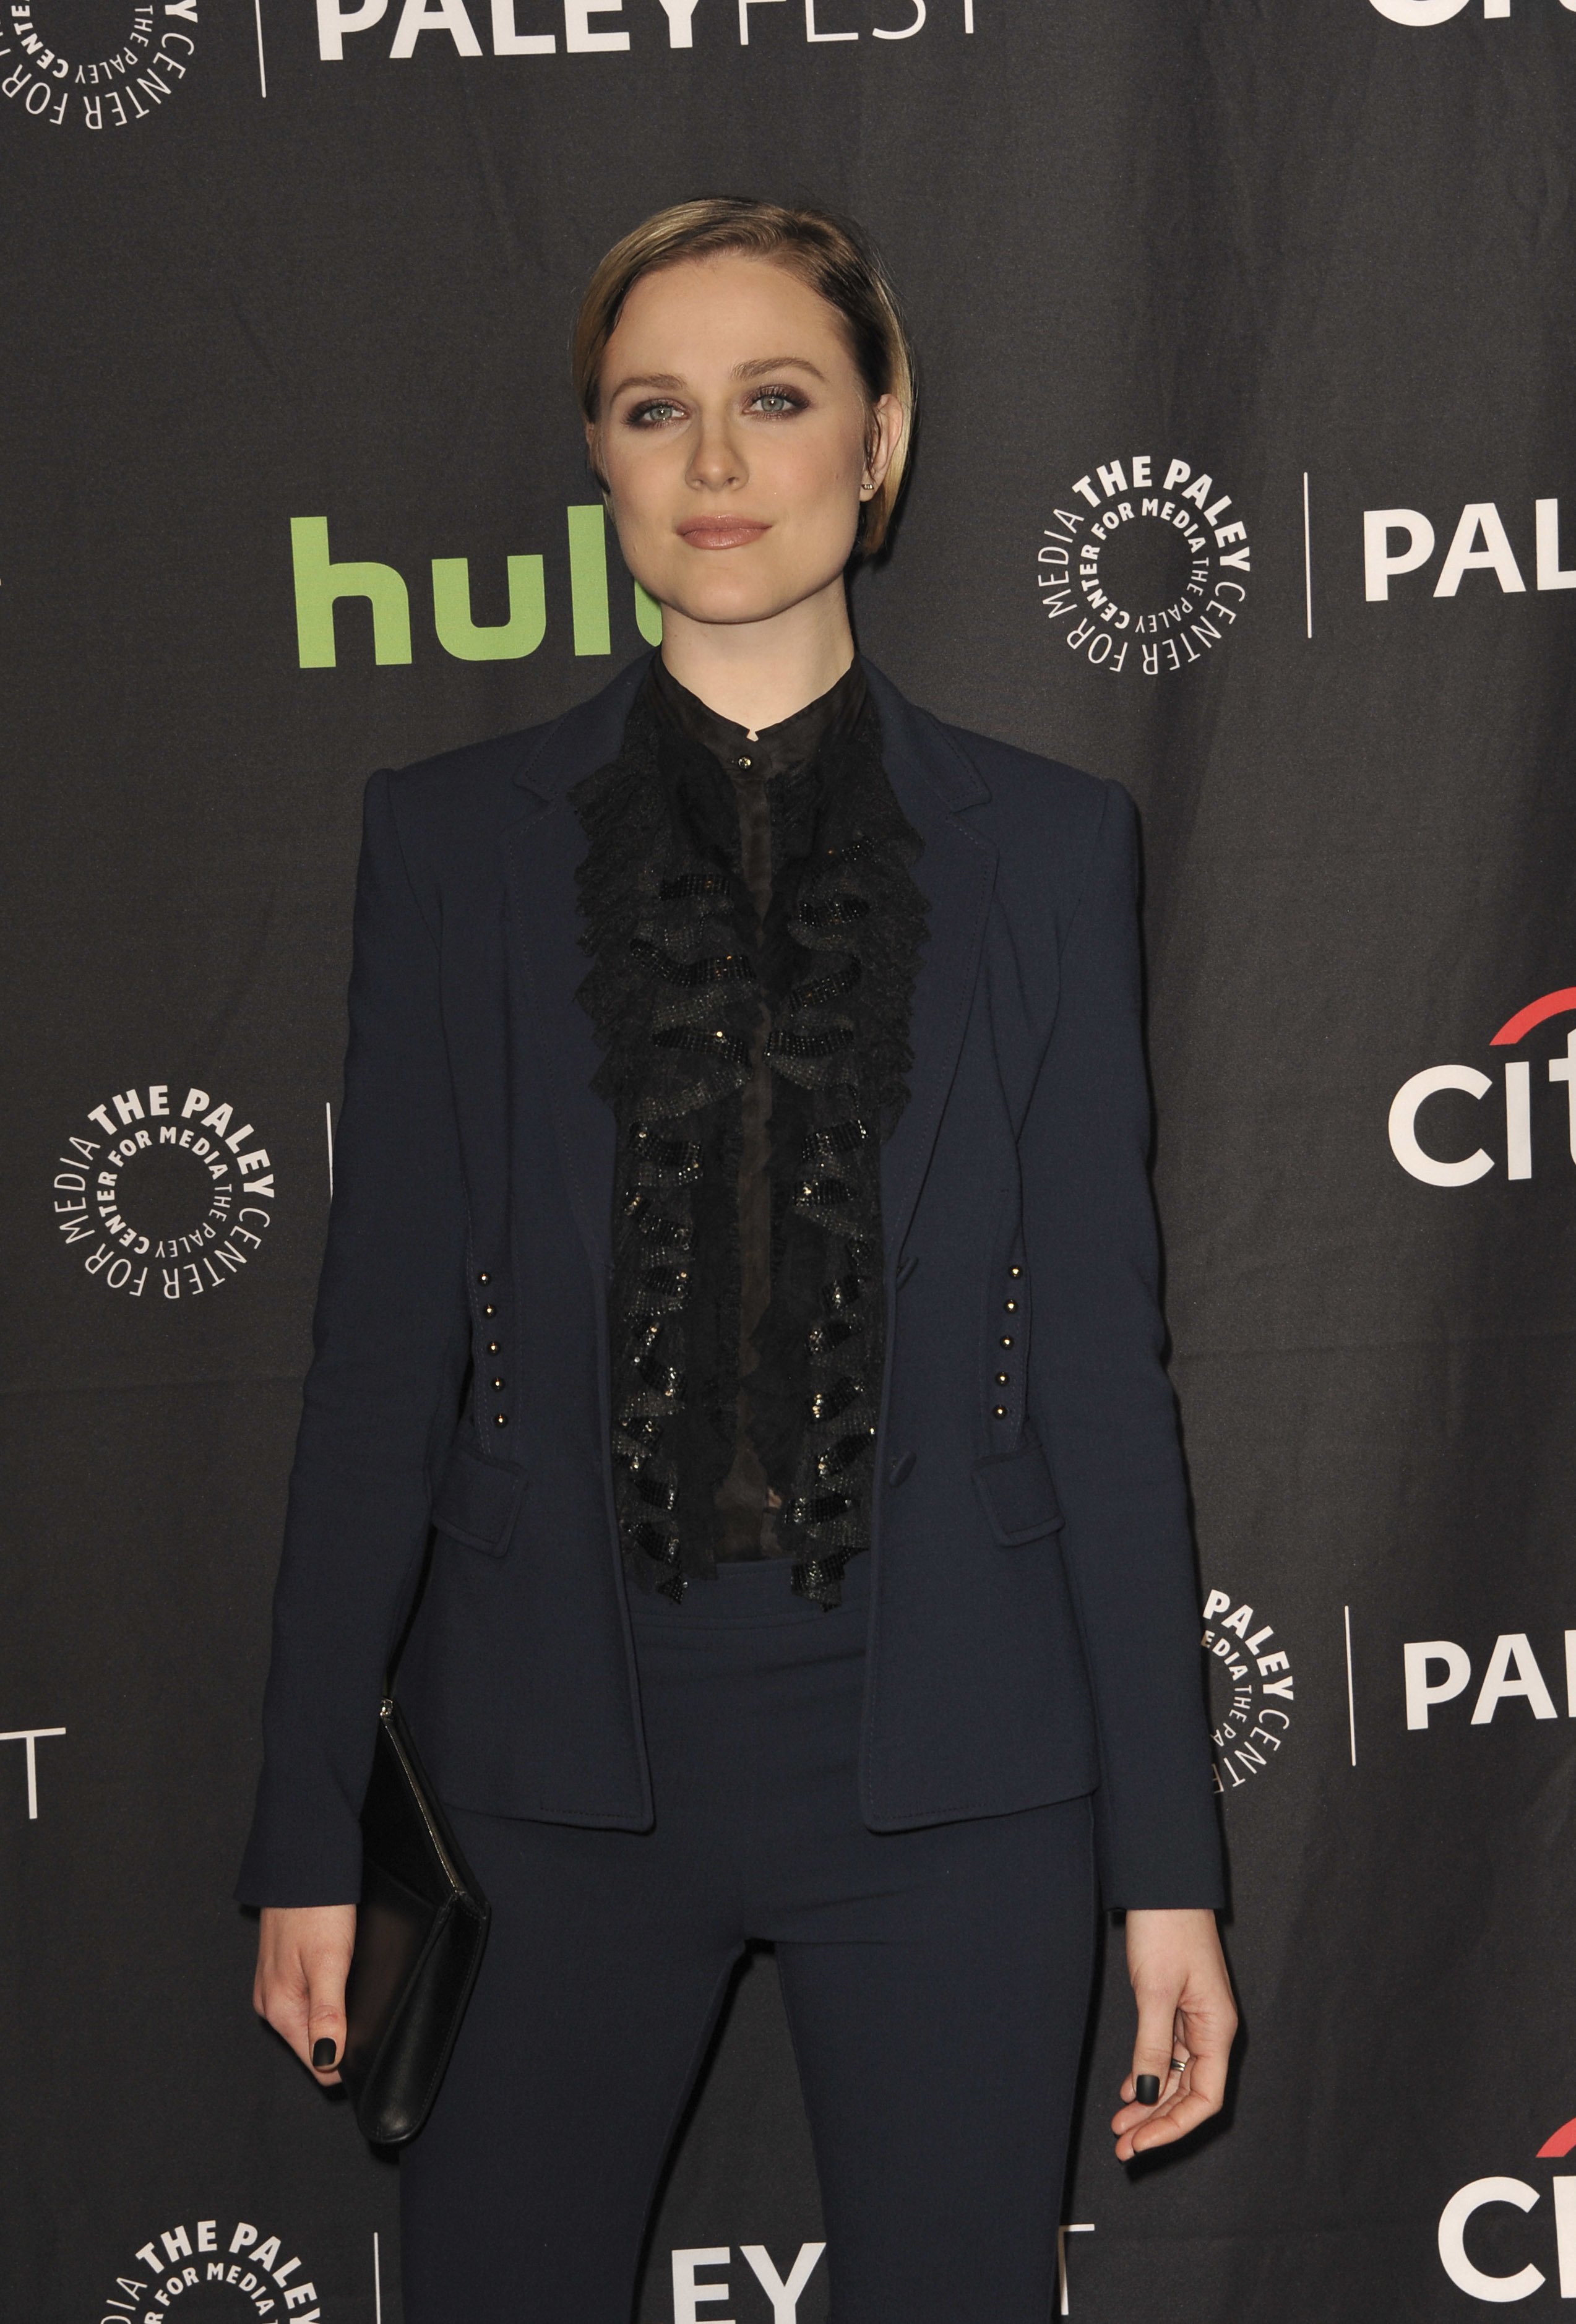 Evan Rachel Wood attends the 34th Annual PaleyFest in Los Angeles on March 25, 2017.